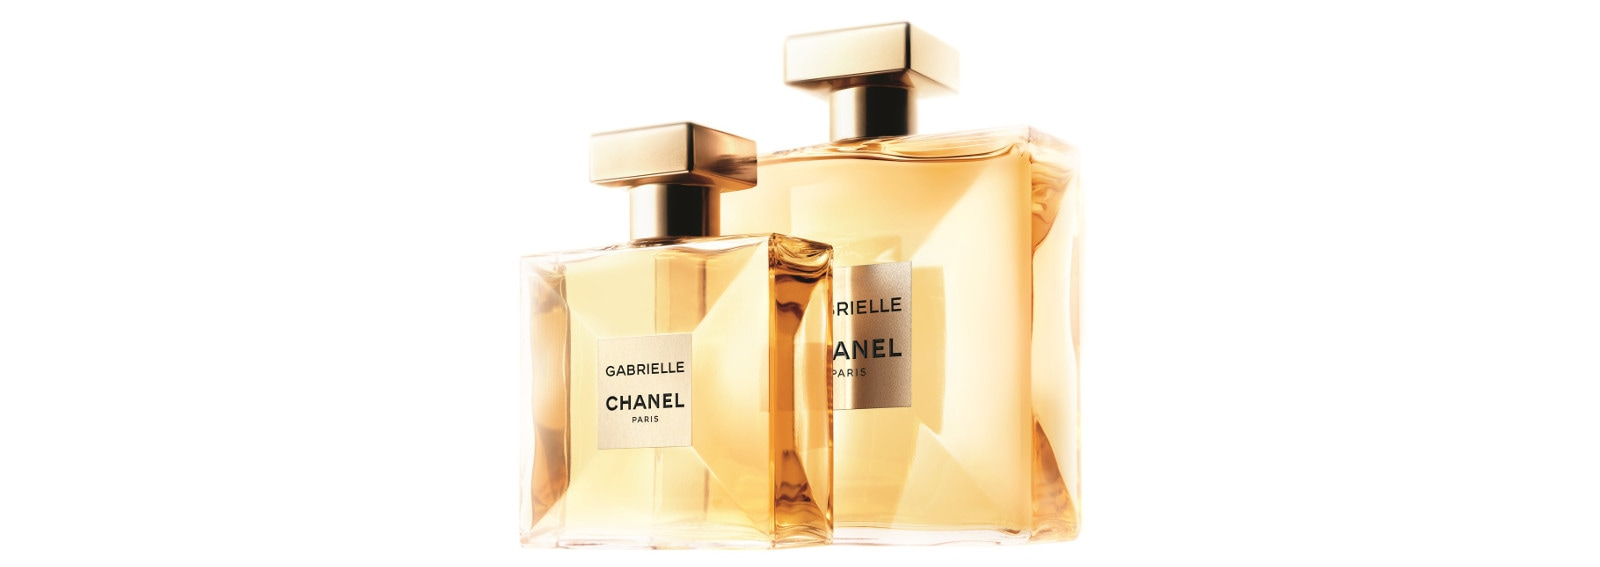 cover-chanel-gabrielle-flacone-desktop